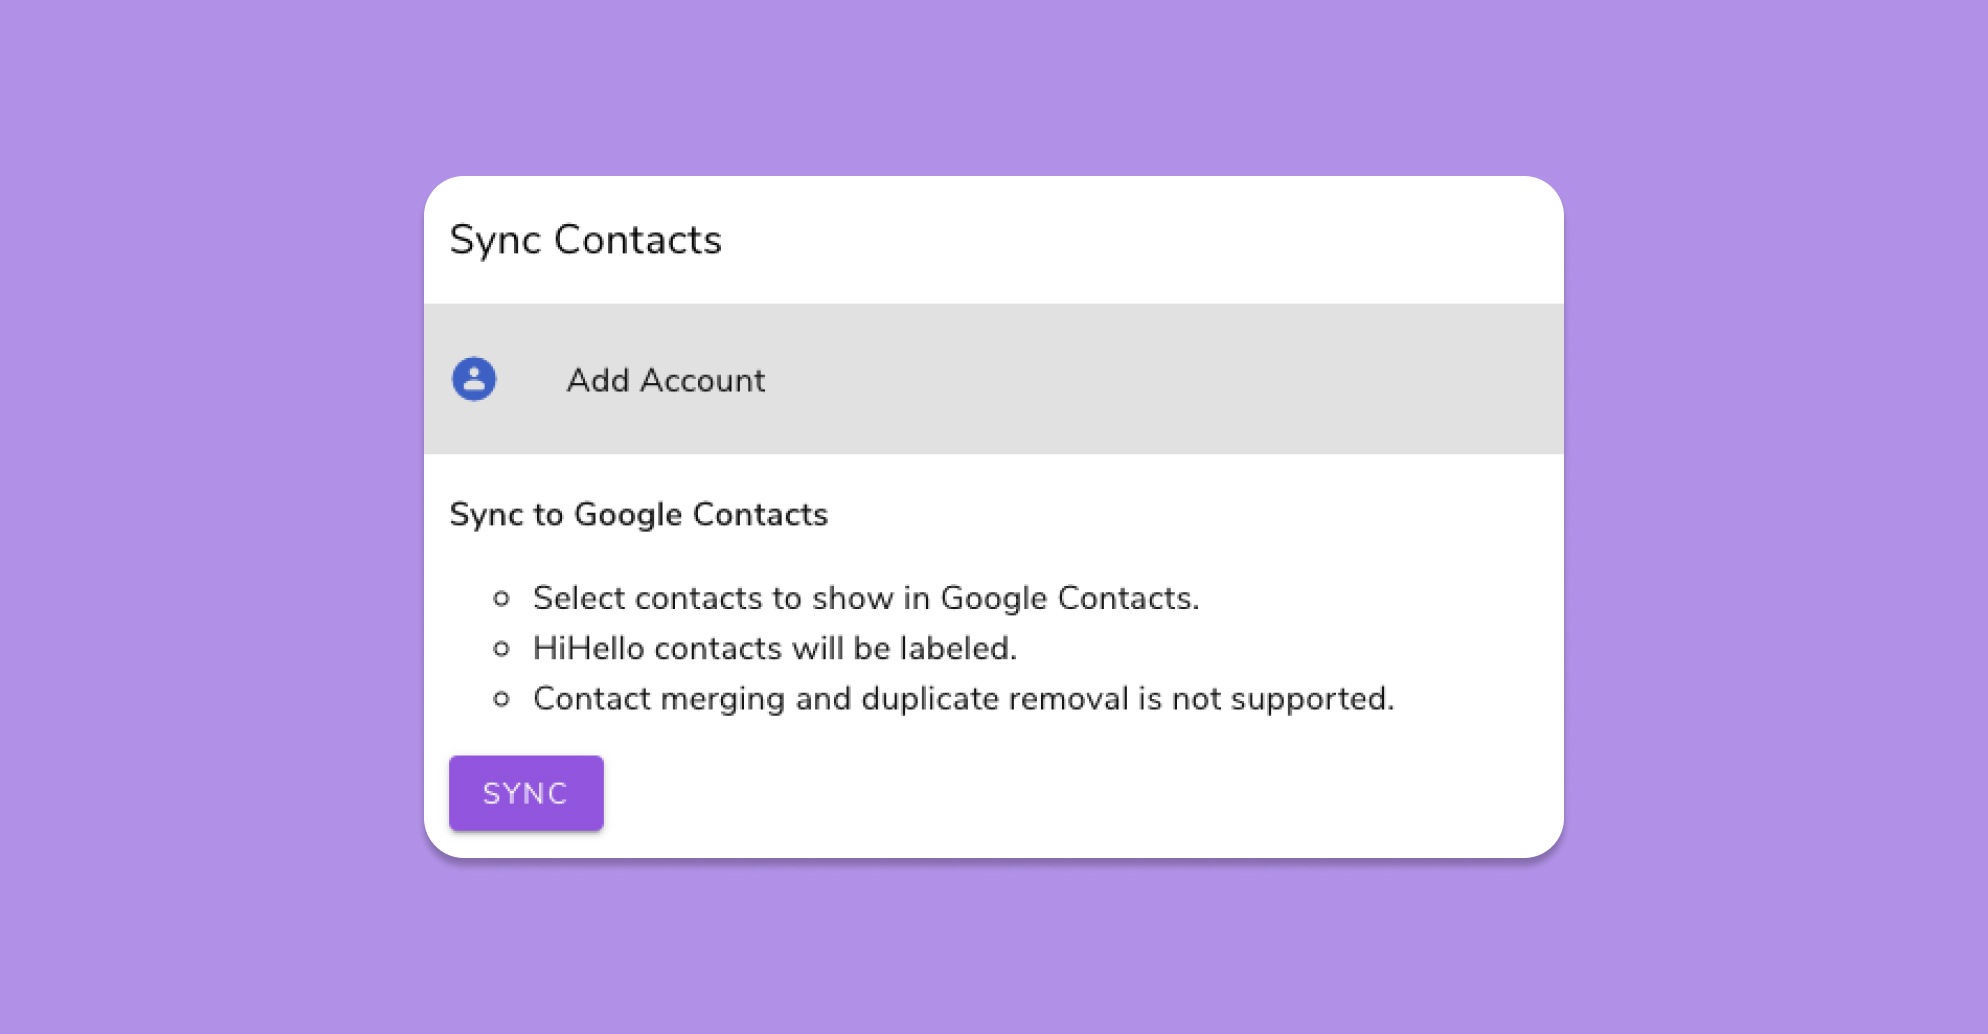 Next, click Sync to start syncing your Google Contacts with HiHello.